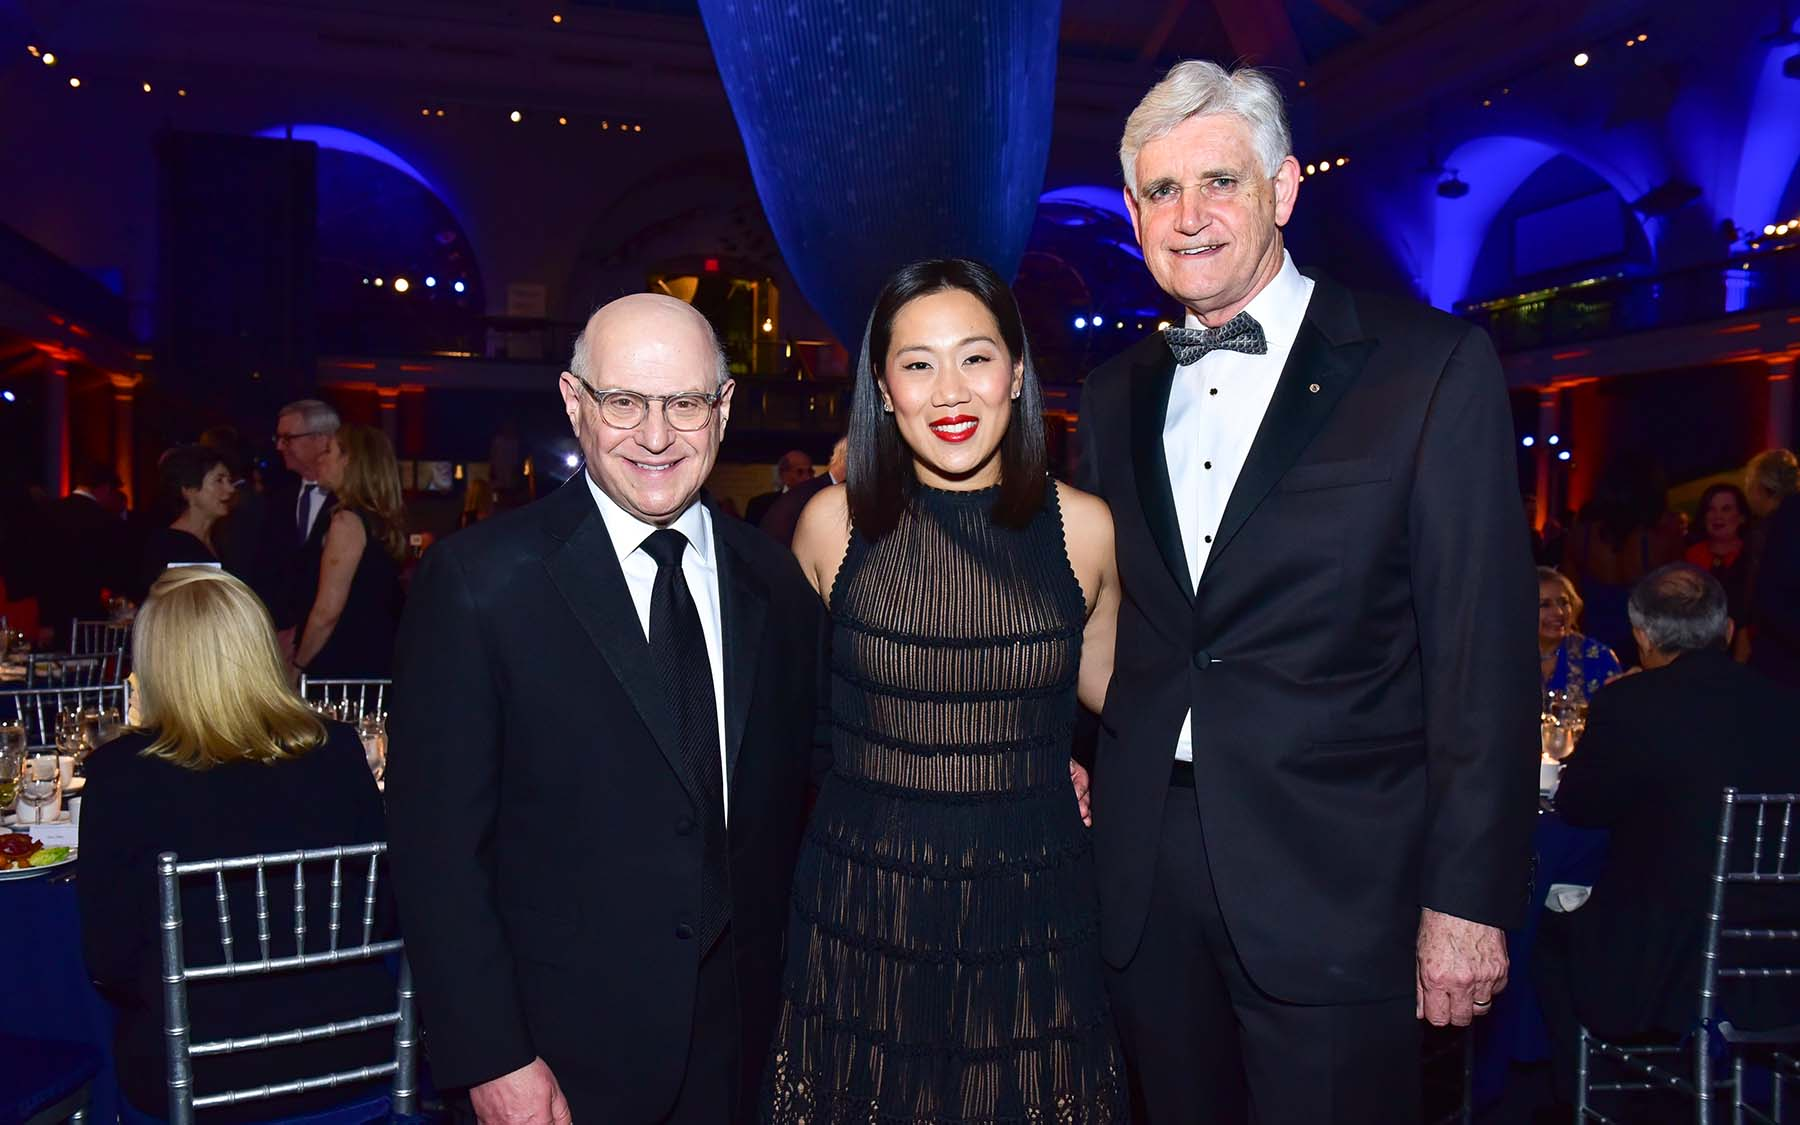 13th Double Helix Medals dinner raises over $4 million